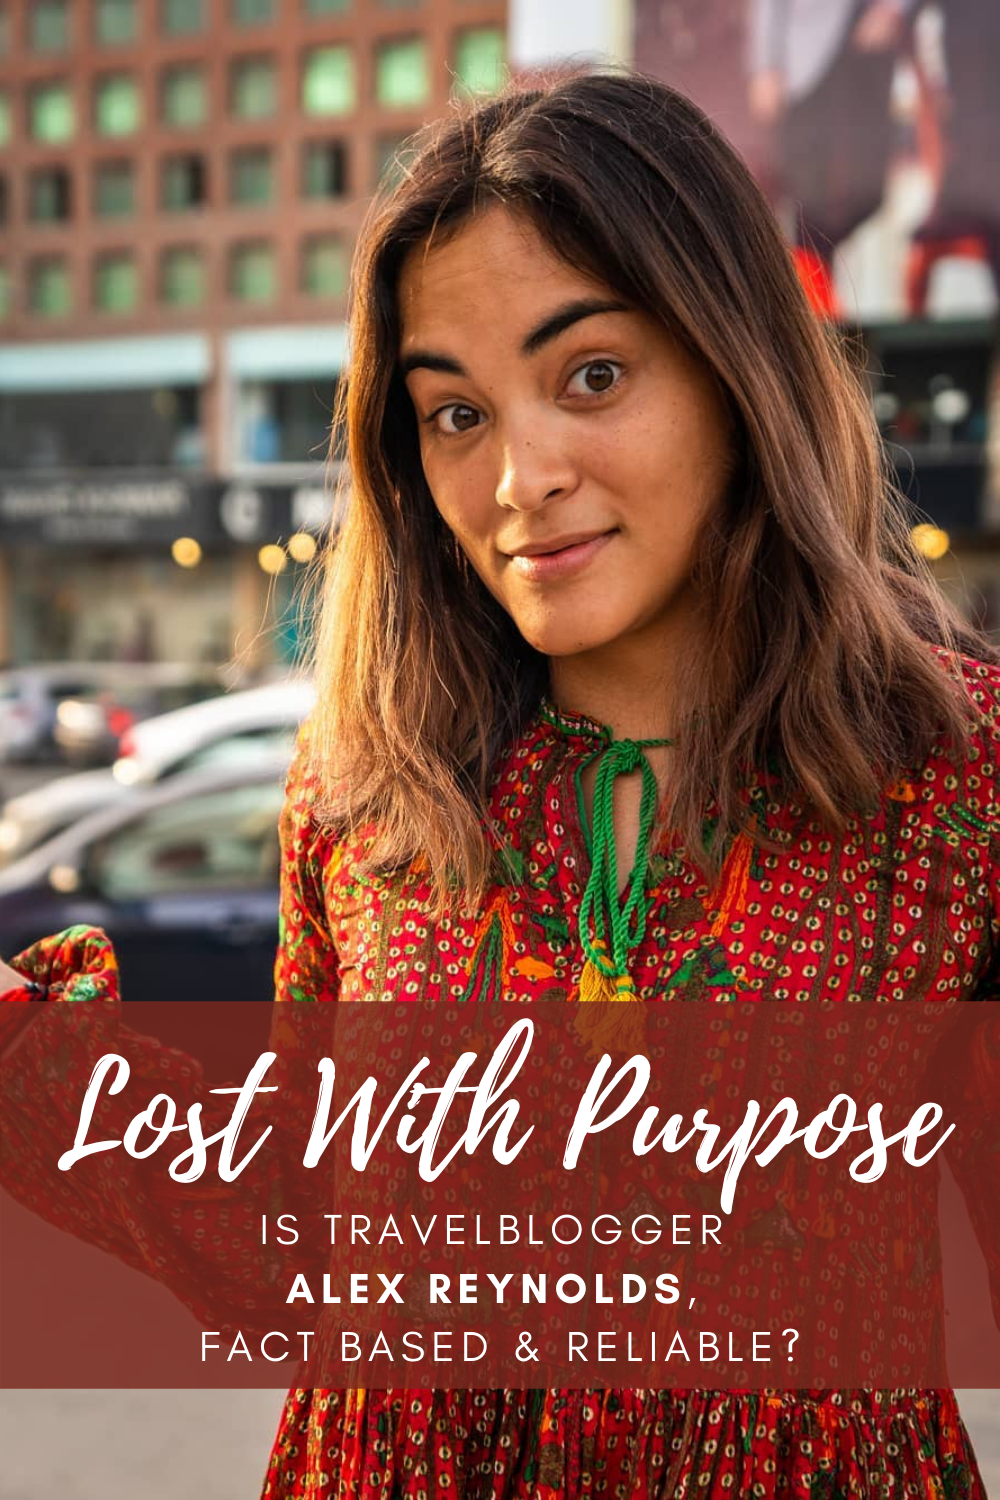 Chapursan Valley - Alex Reynolds - Lost with purpose - reliable?